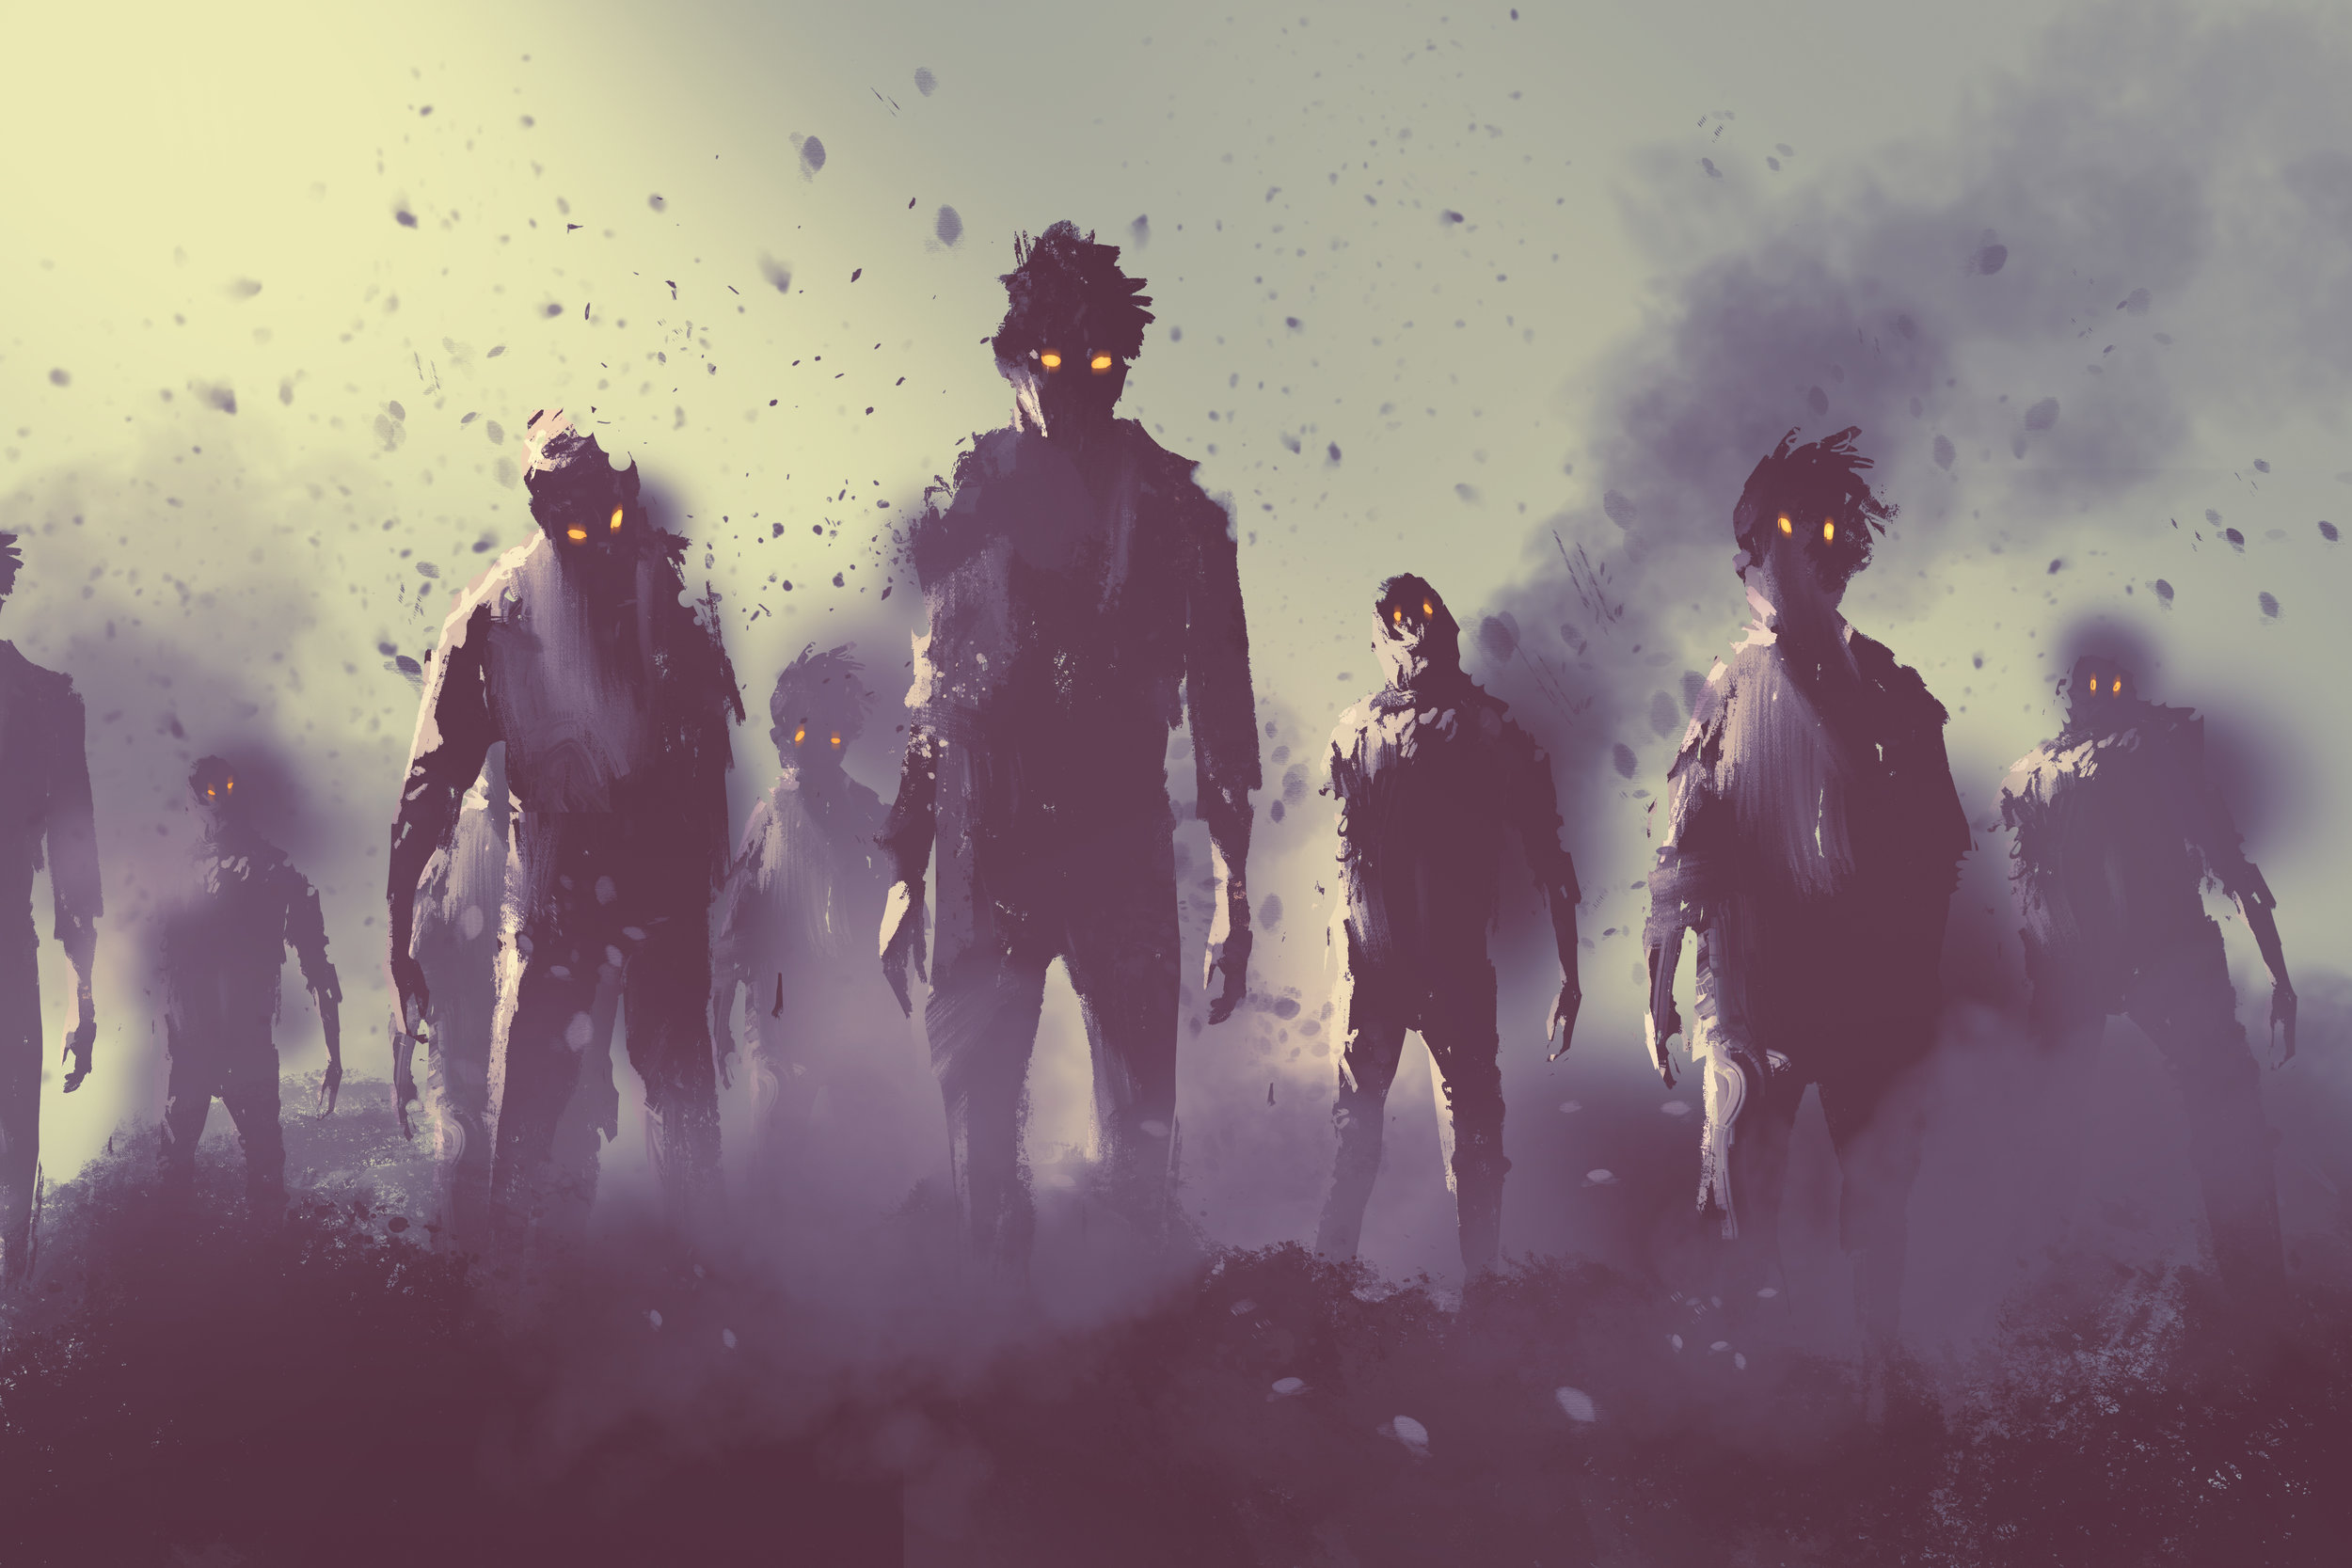 zombie-crowd-walking-at-night,halloween-concept-576713768_4500x3000.jpeg